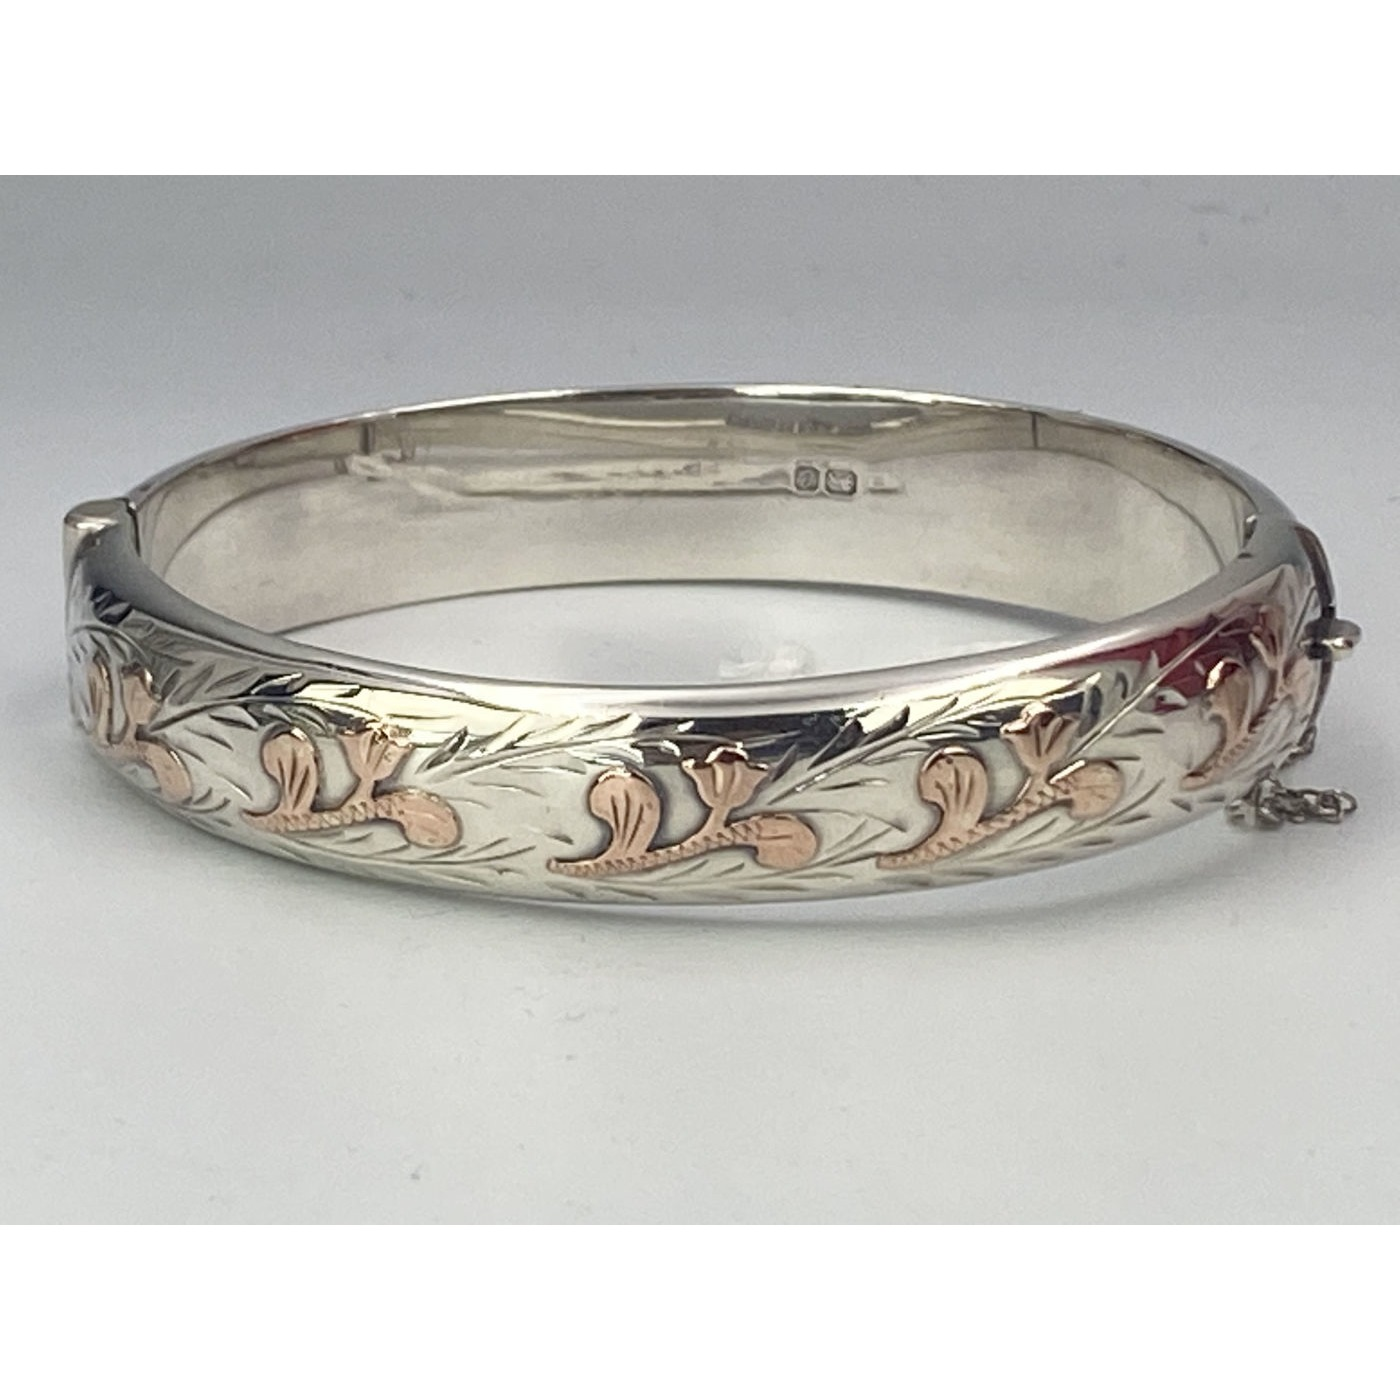 Rose Gold Small Tulip-style Decoration on a Narrow English Silver Bangle